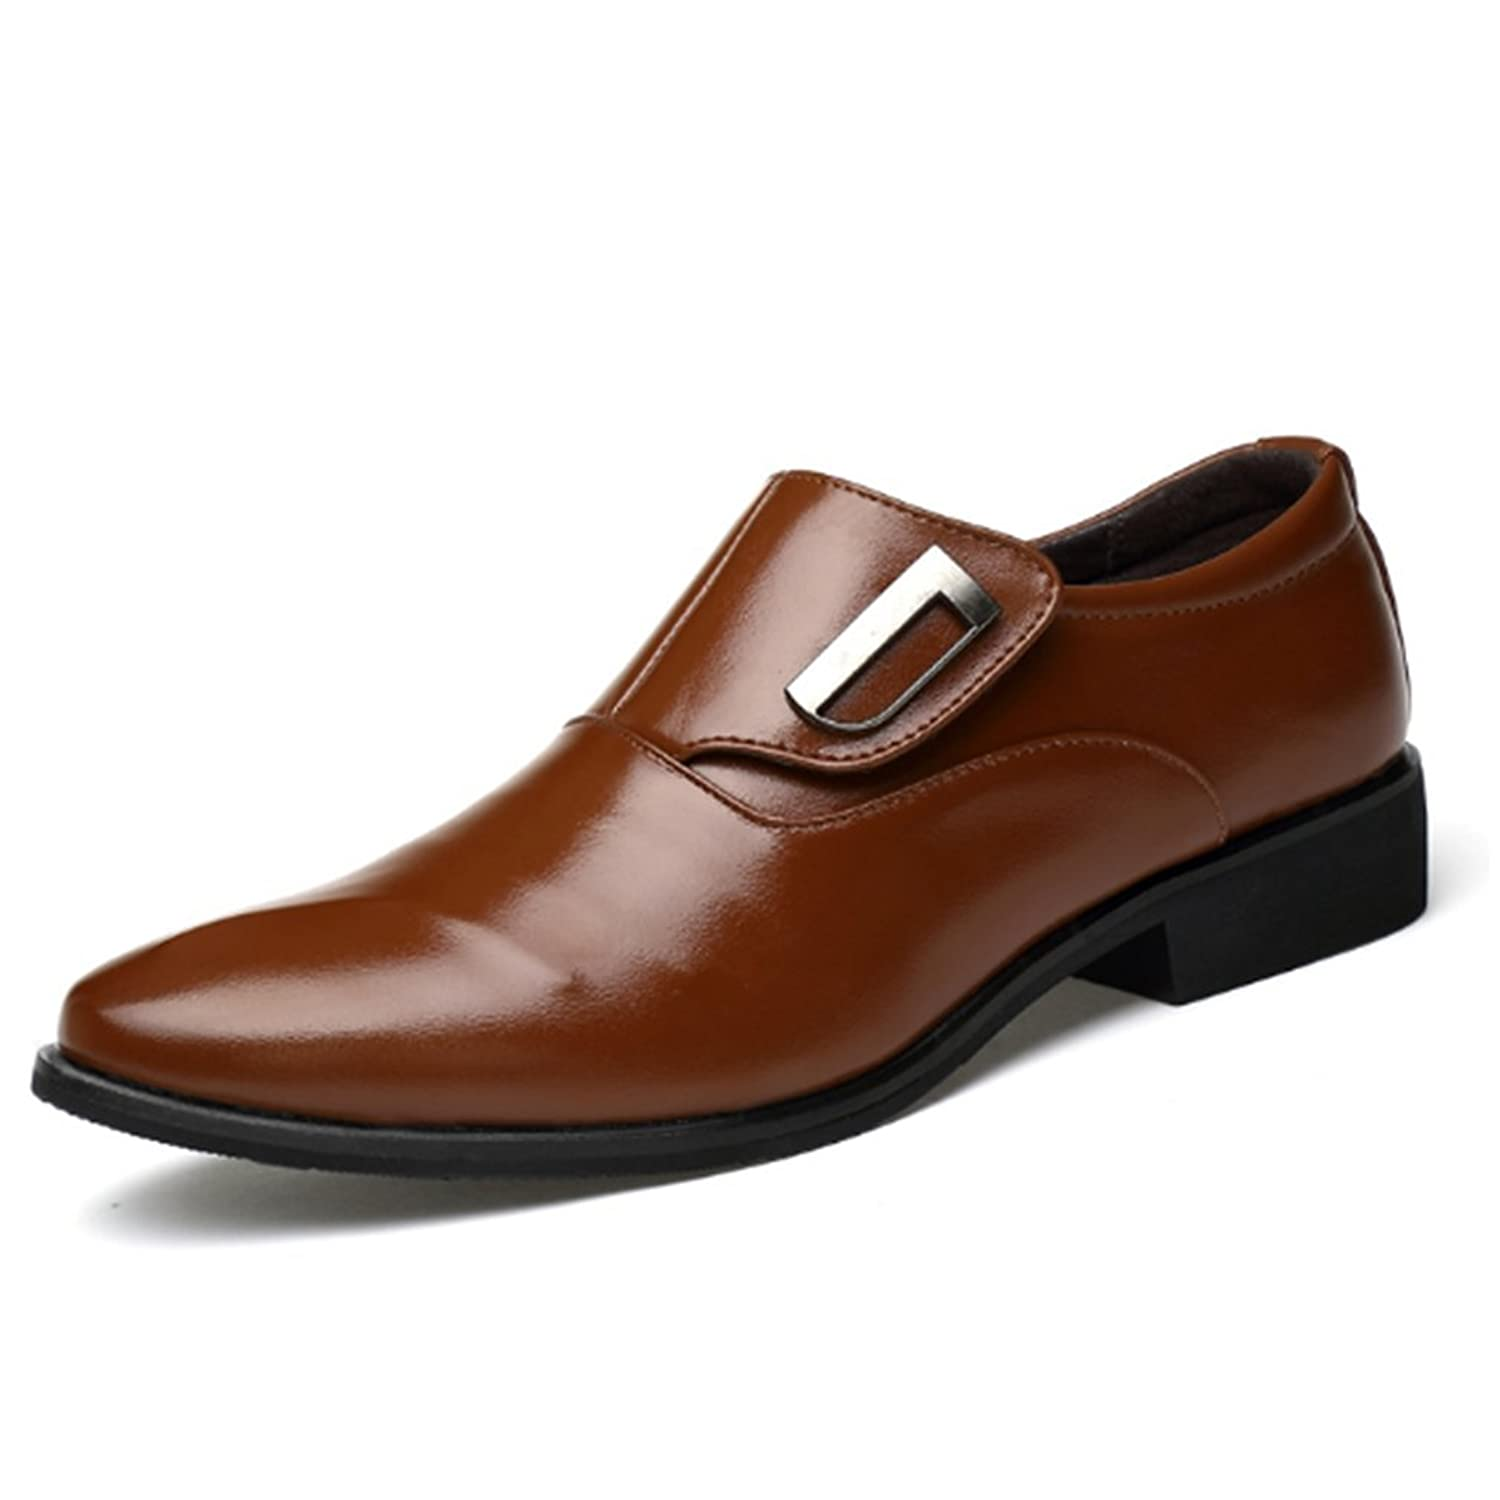 Mens Vintage Style Shoes| Retro Classic Shoes Seakee Mens Business Slip-on Dress Shoes Semi-formal Oxford $25.99 AT vintagedancer.com